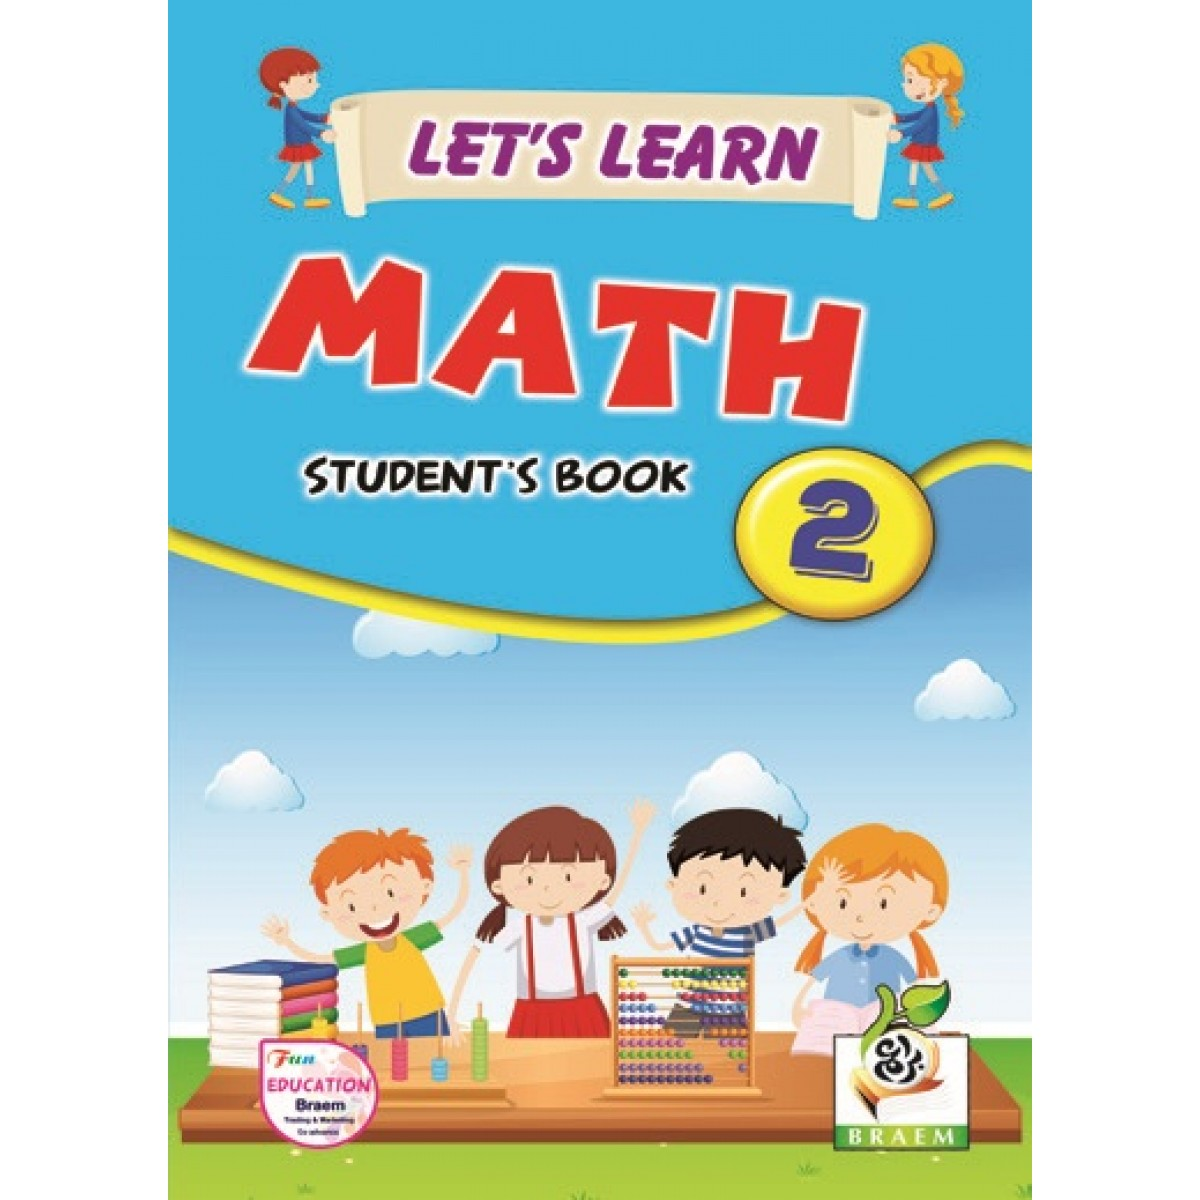 Let's Learn Math 2